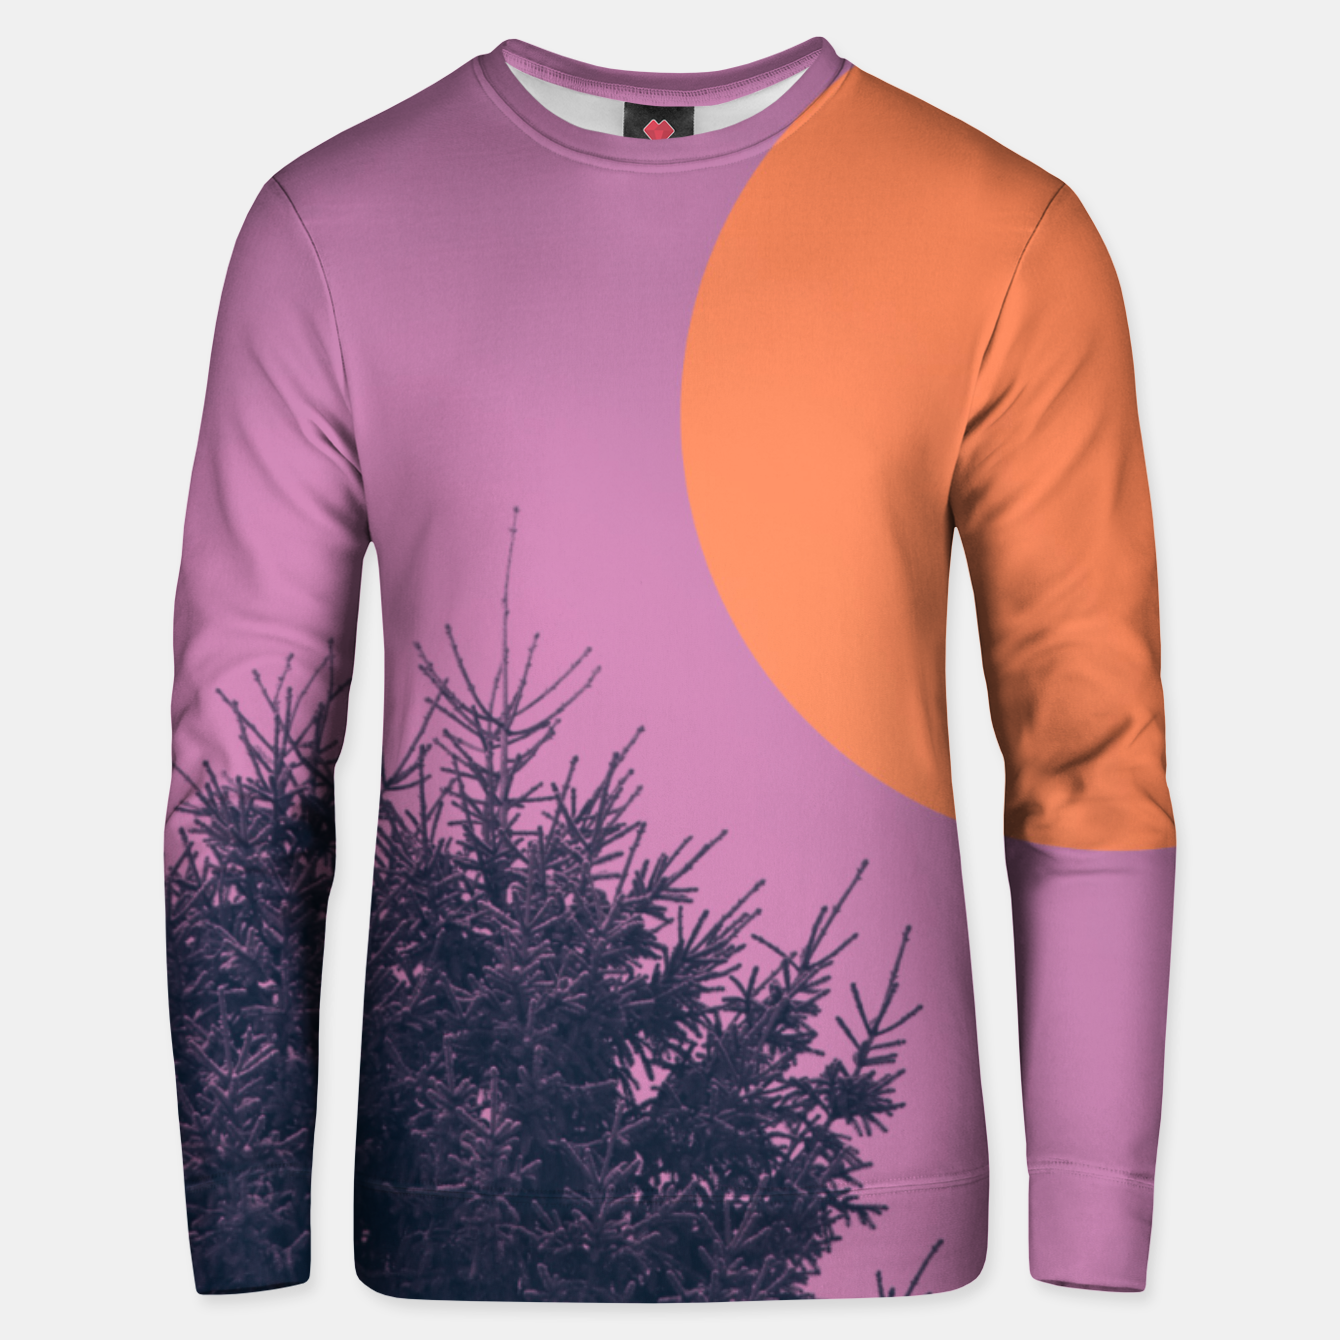 Foto Snowy pine tree and colorful background Unisex sweater - Live Heroes